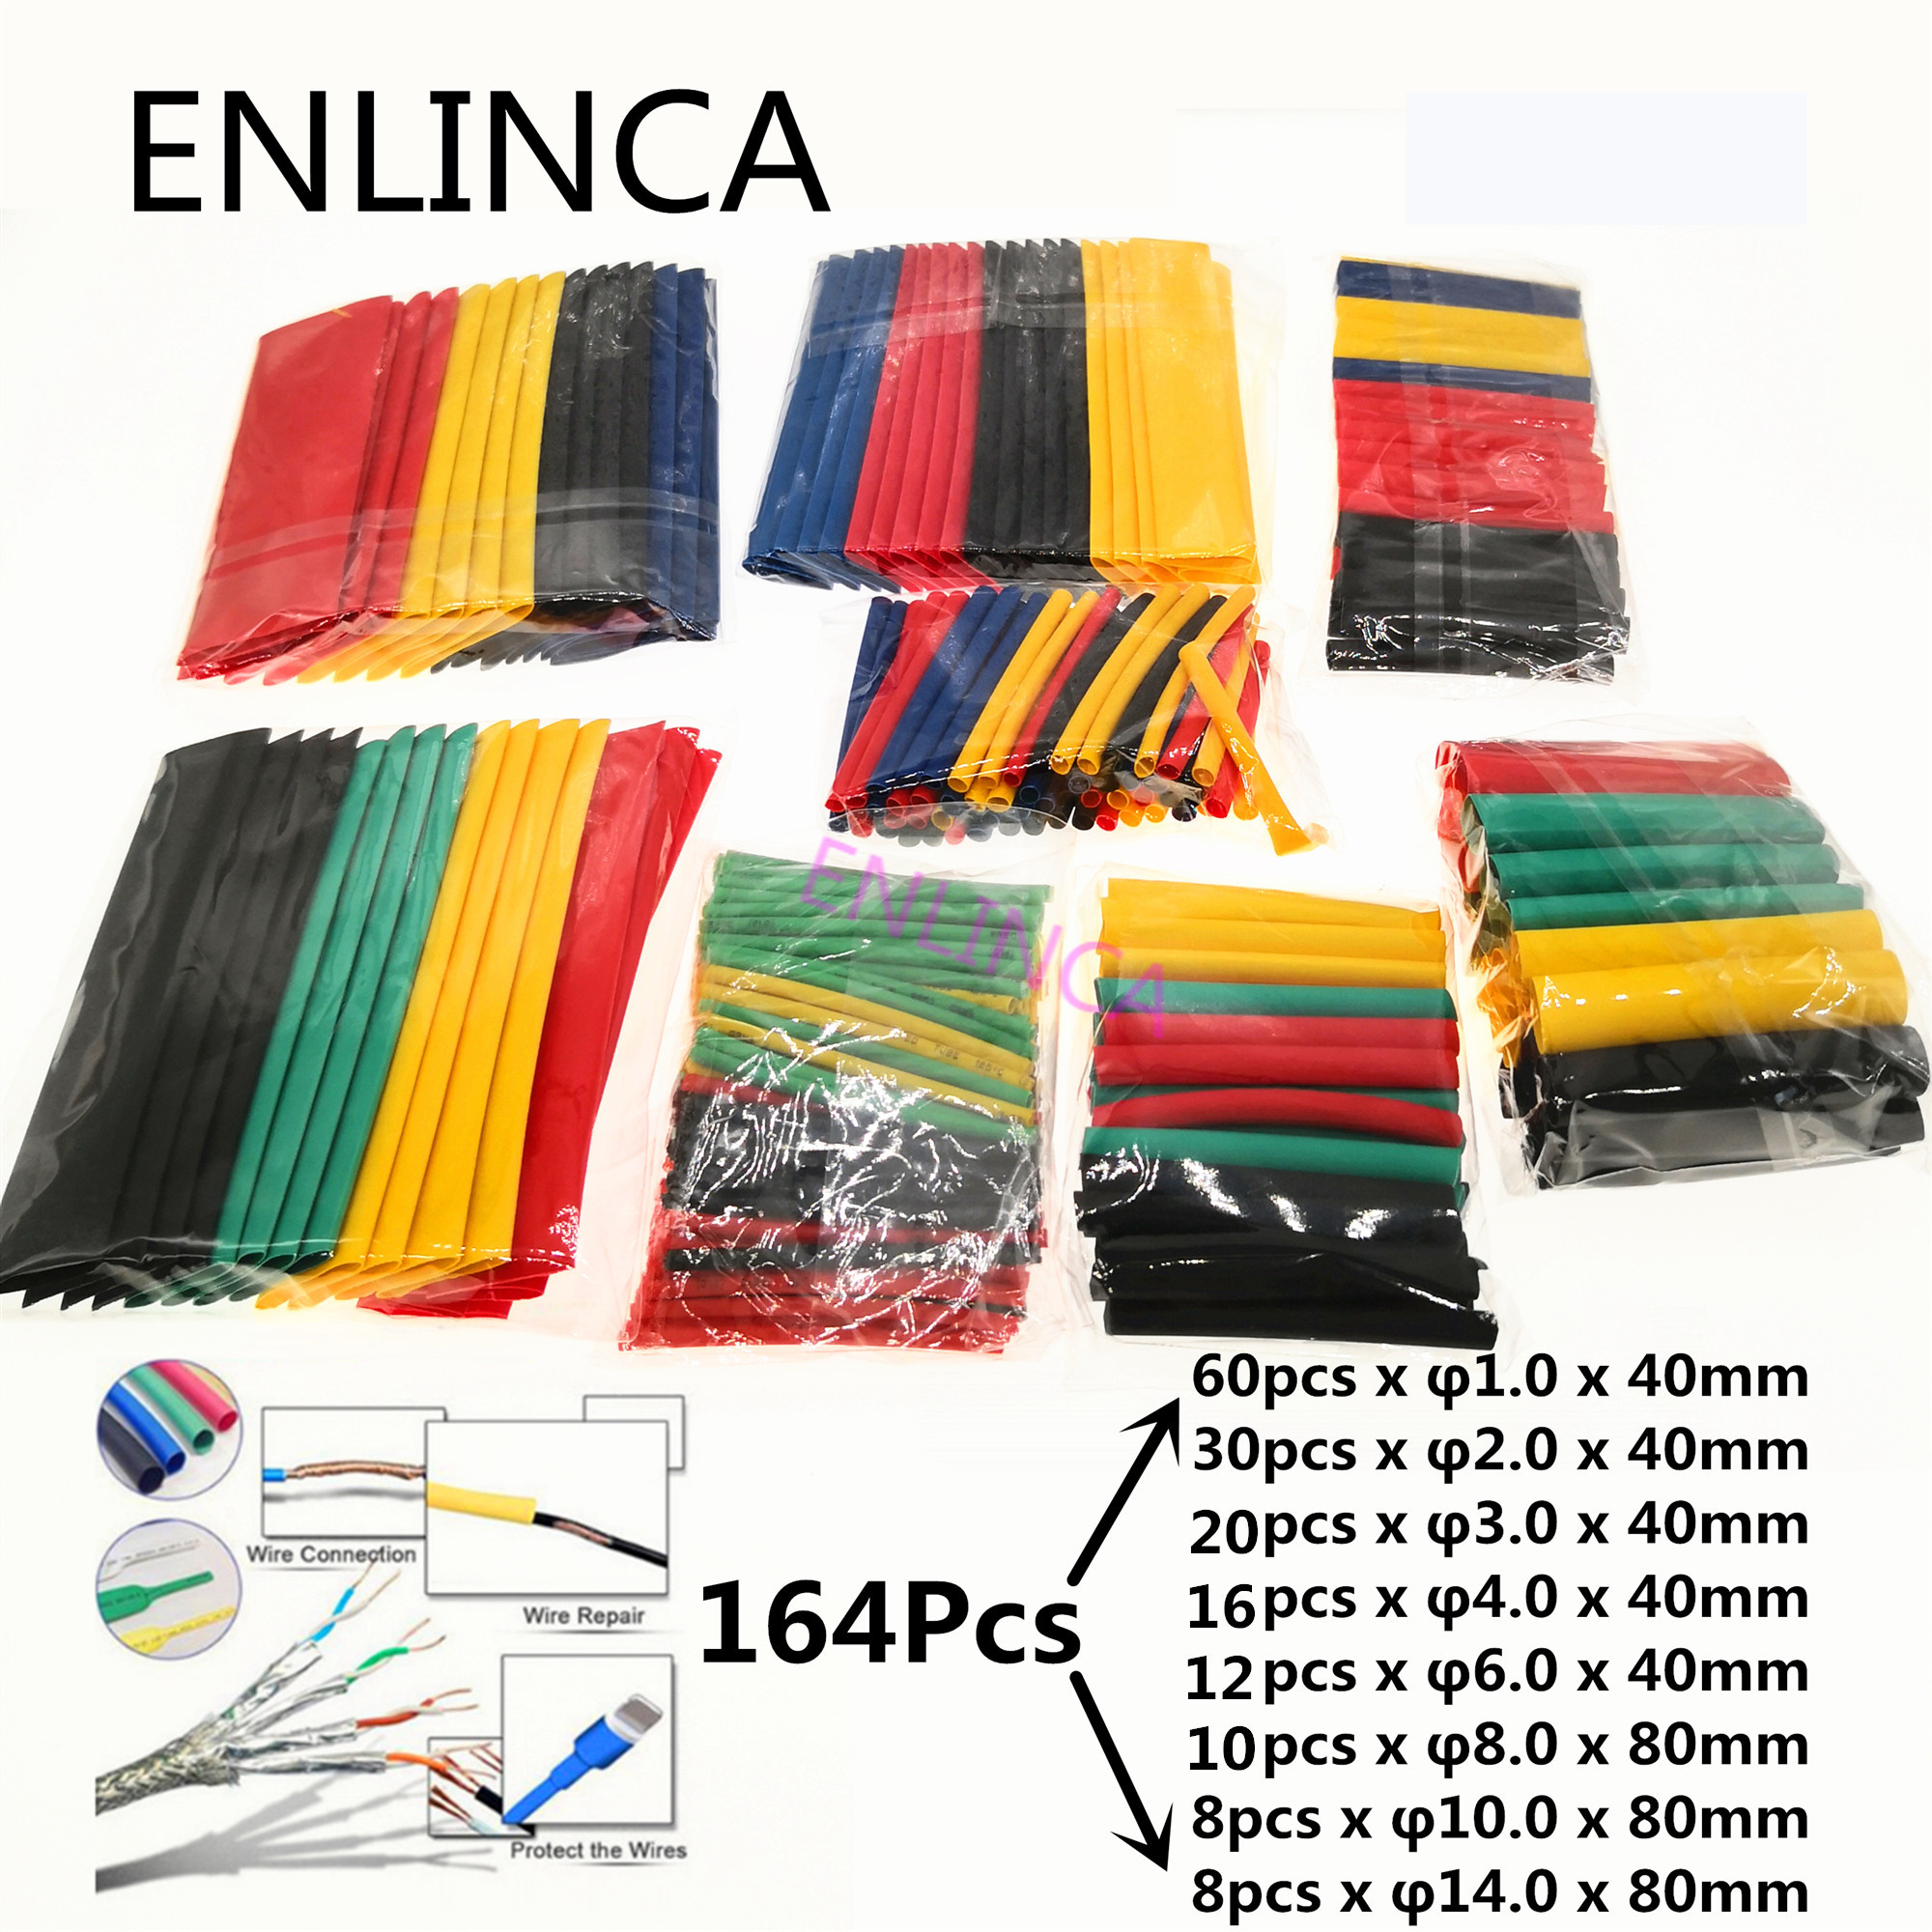 127-164pcs Heat Shrink Tube Kit Insulation Sleeving Termoretractil Polyolefin Shrinking Assorted Heat Shrink Tubing Wire Cable